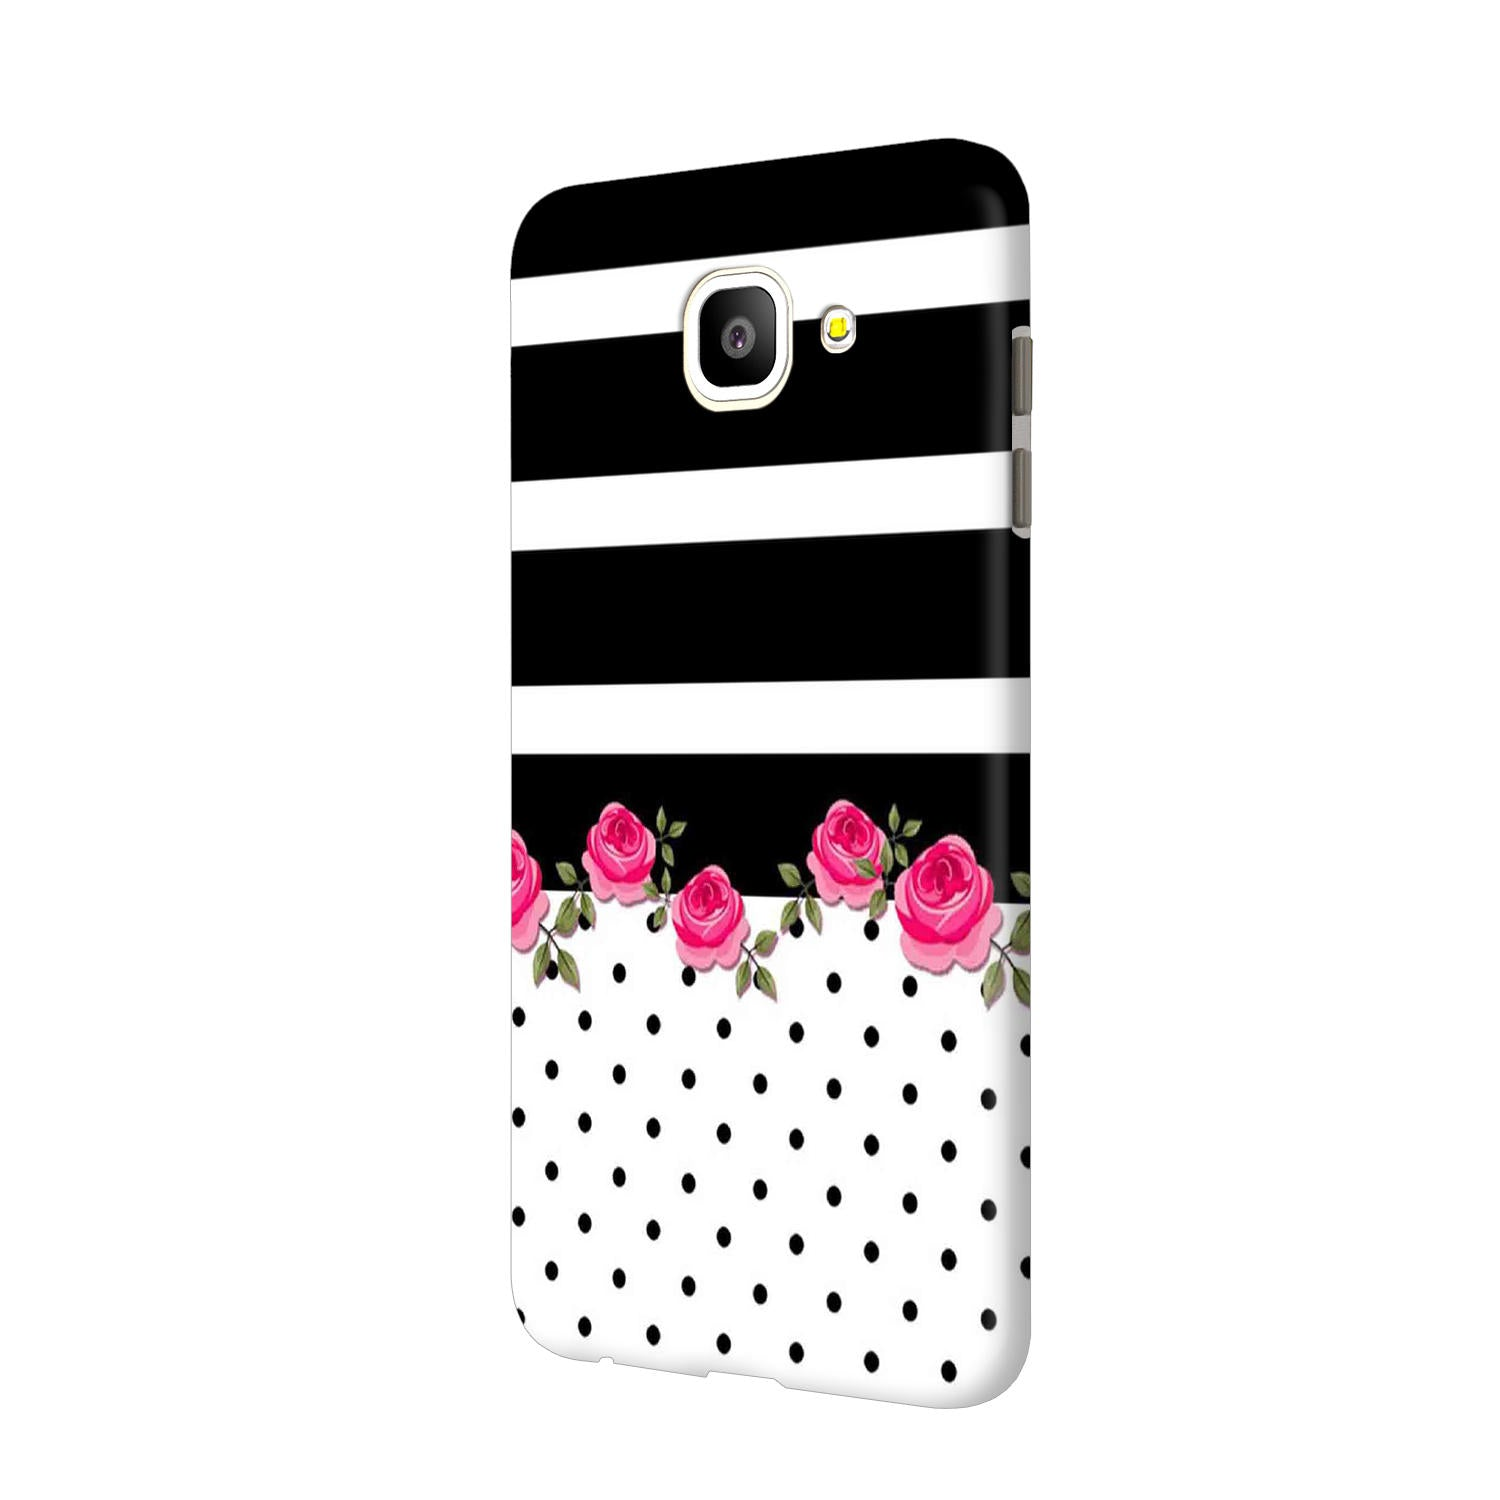 Rose Polka Stripes Samsung Galaxy J7 Max Mobile Cover Case - MADANYU